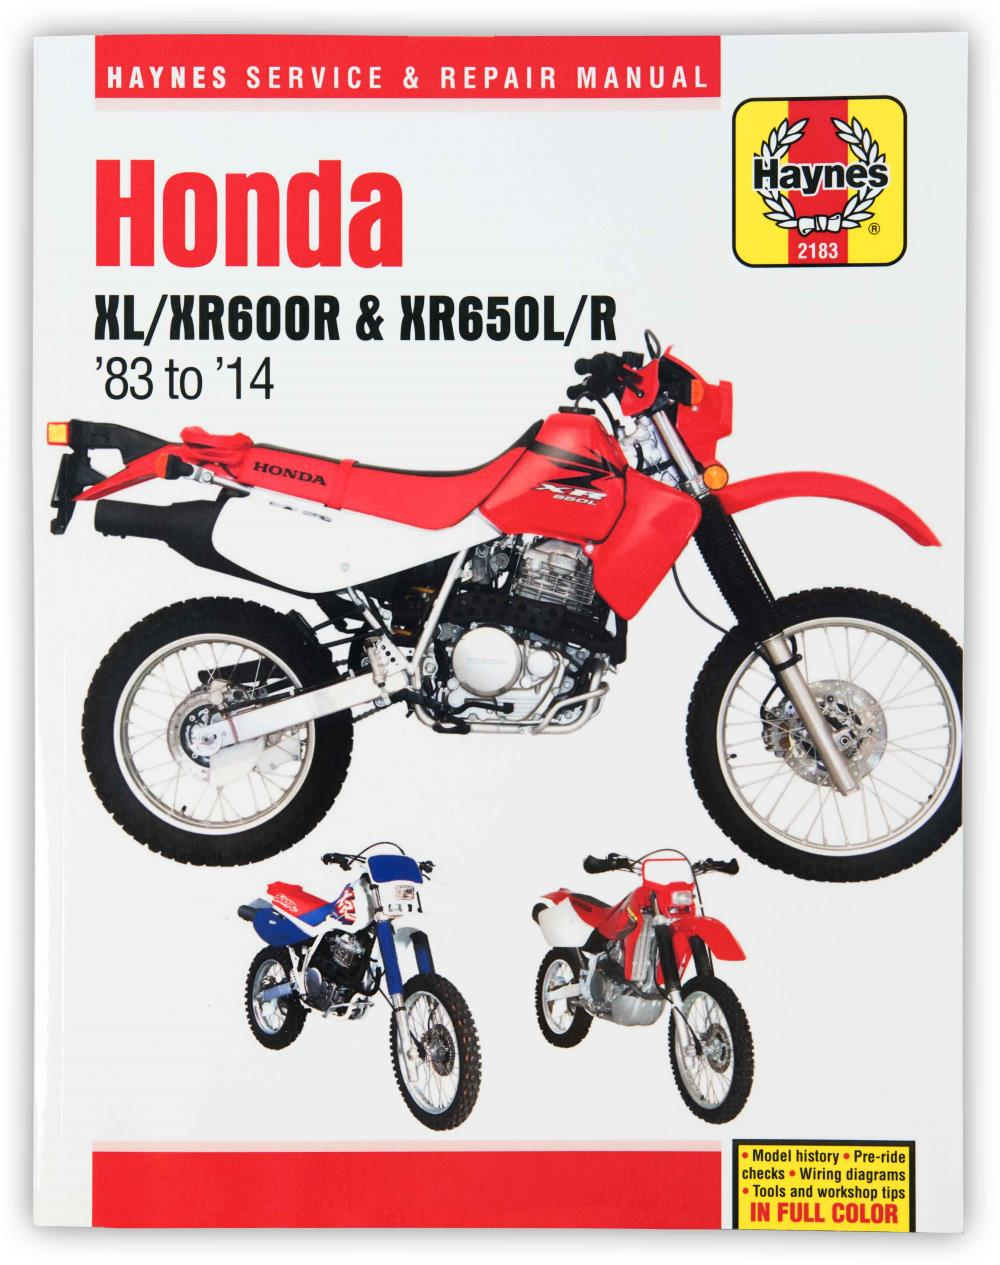 Details about Haynes Manual 2183 HON XL600R & XR600R on